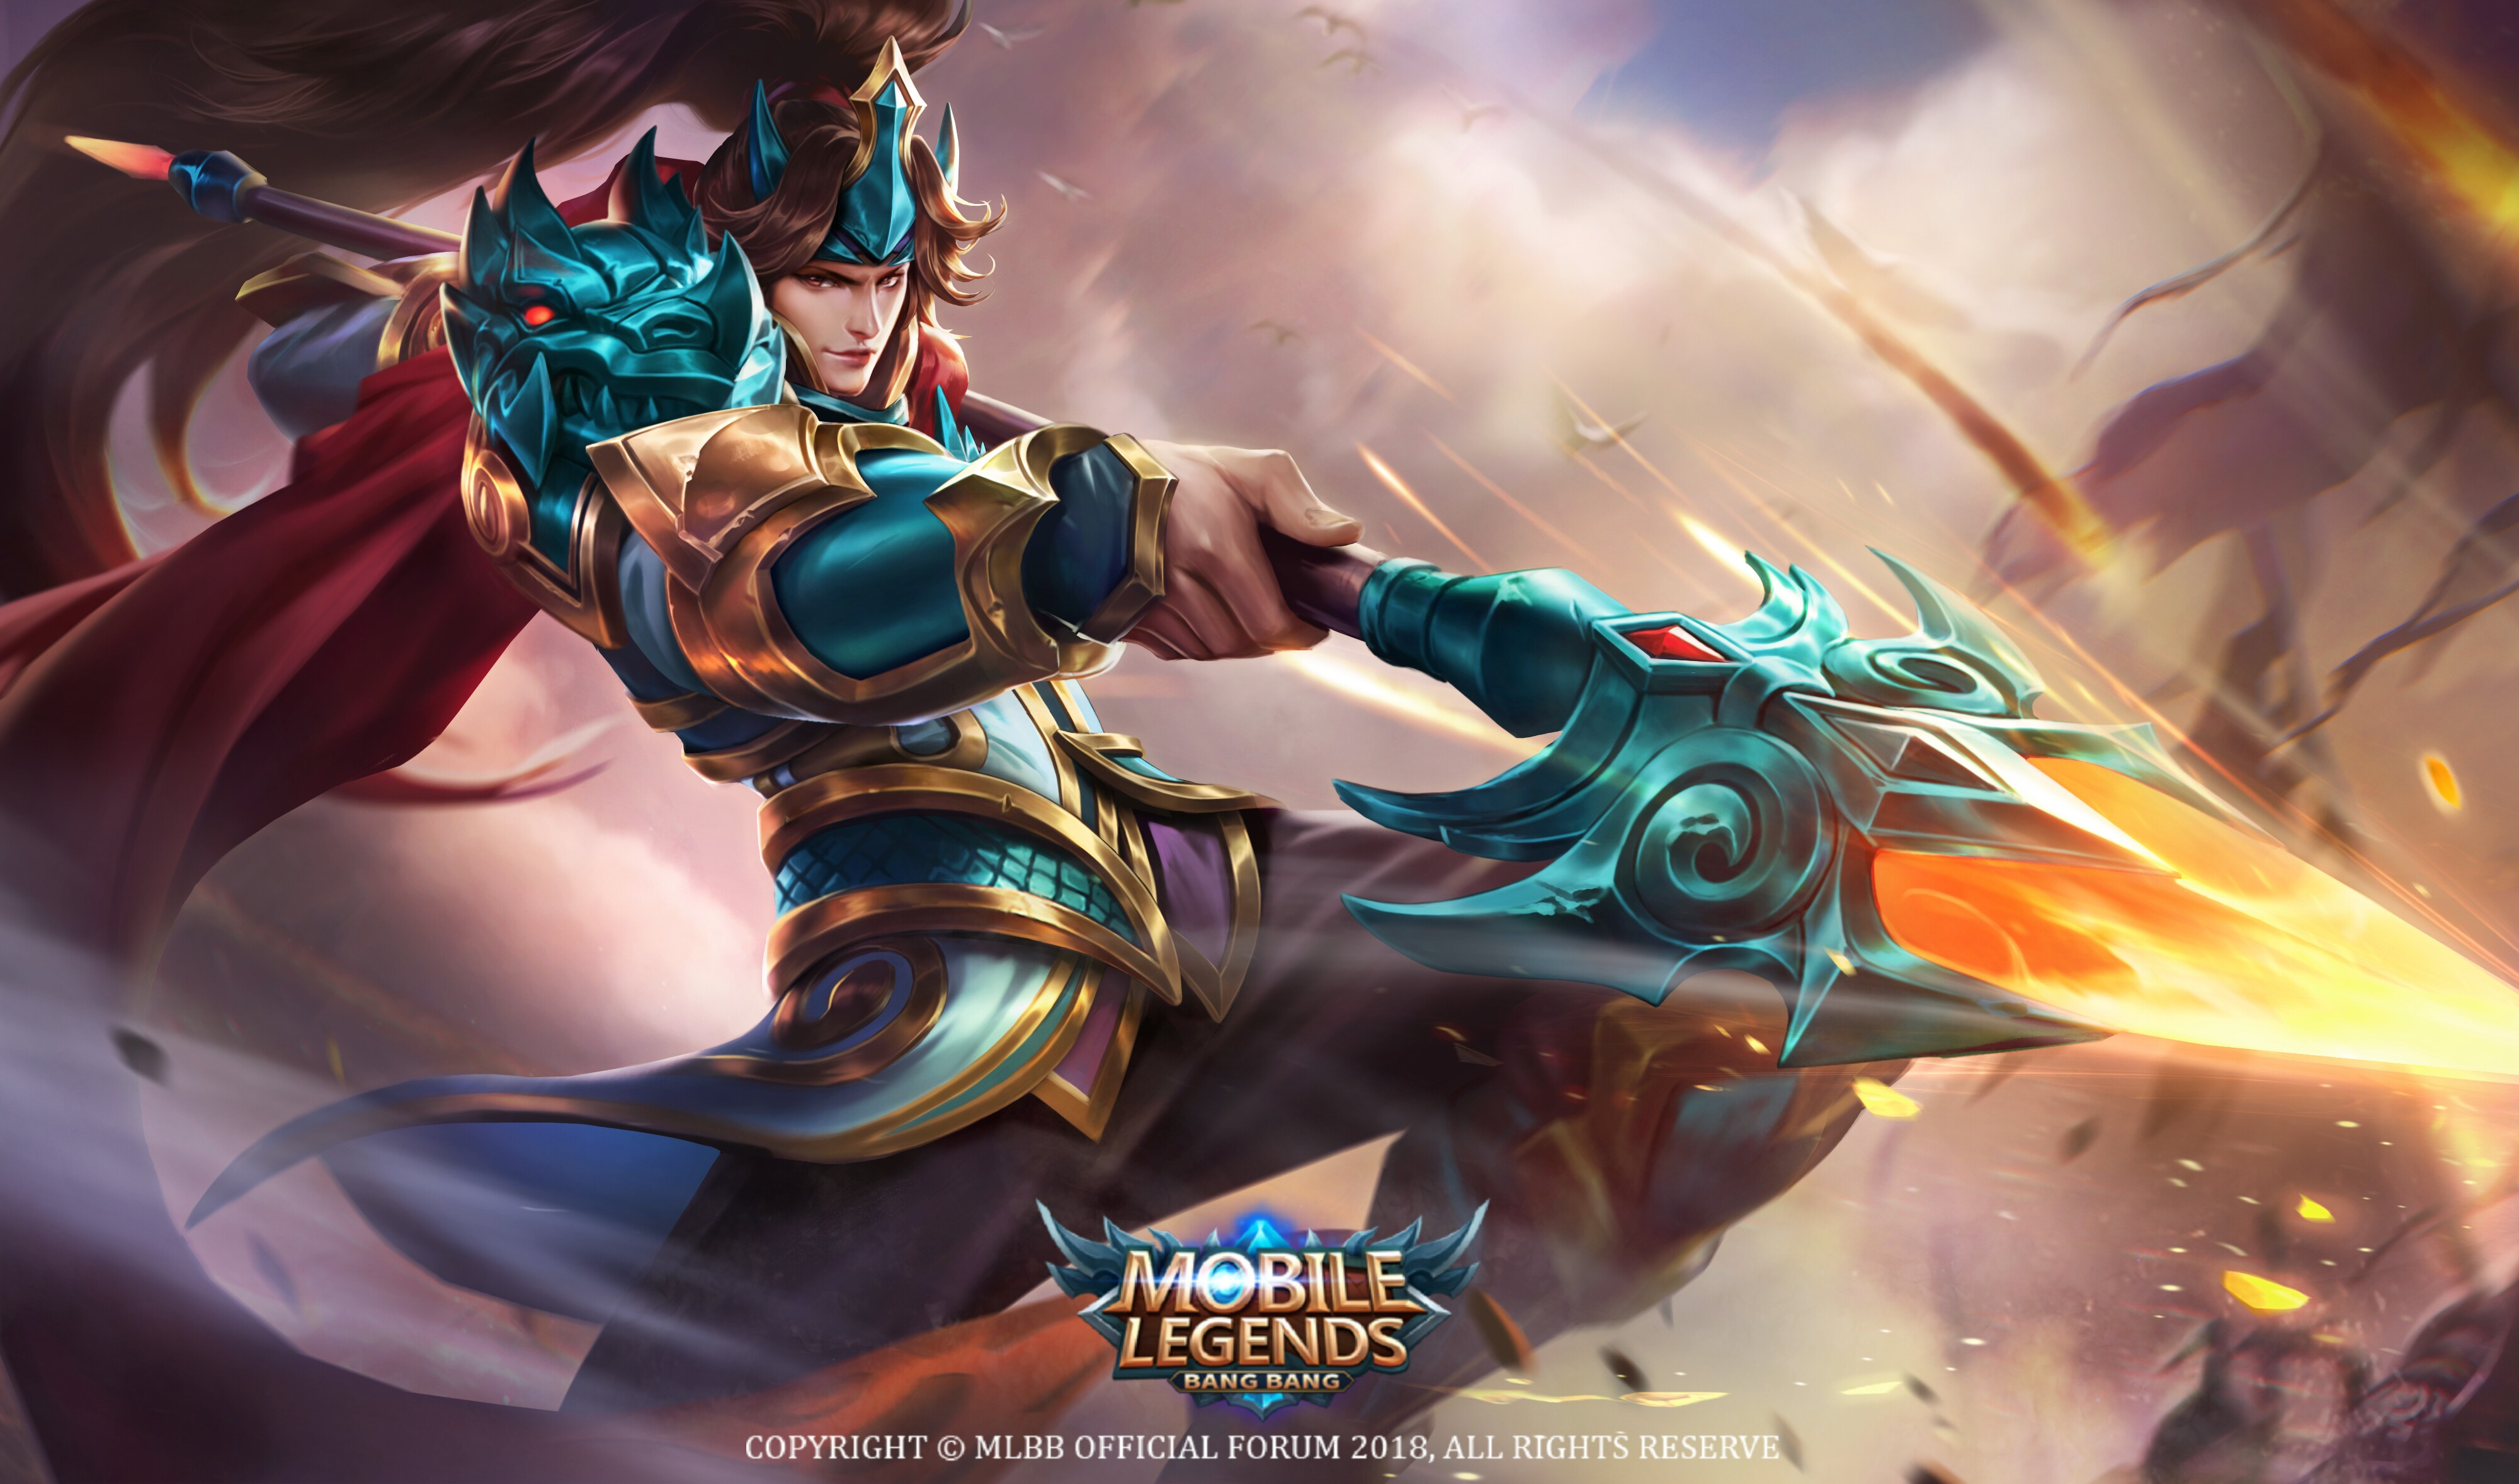 Zilong_Skin00_Son_of_the_Dragon_HD_Wallpaper-.png